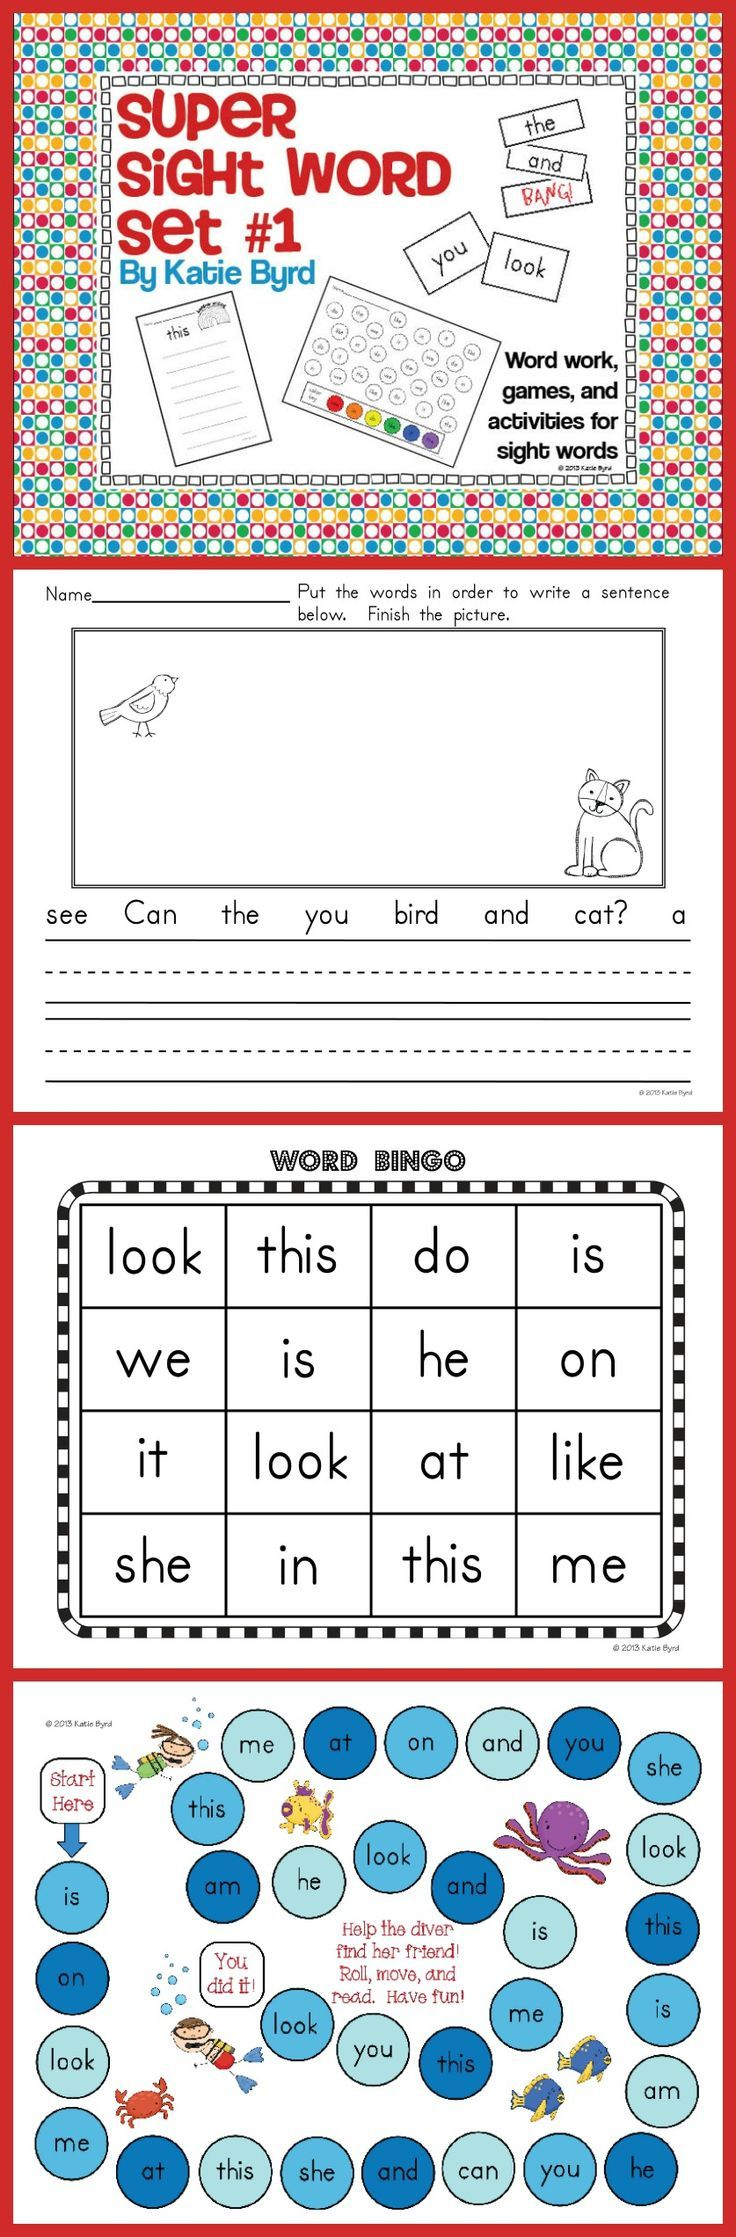 Worksheet Sight Word Program 17 best ideas about word program on pinterest kindergarten sight games words and reading